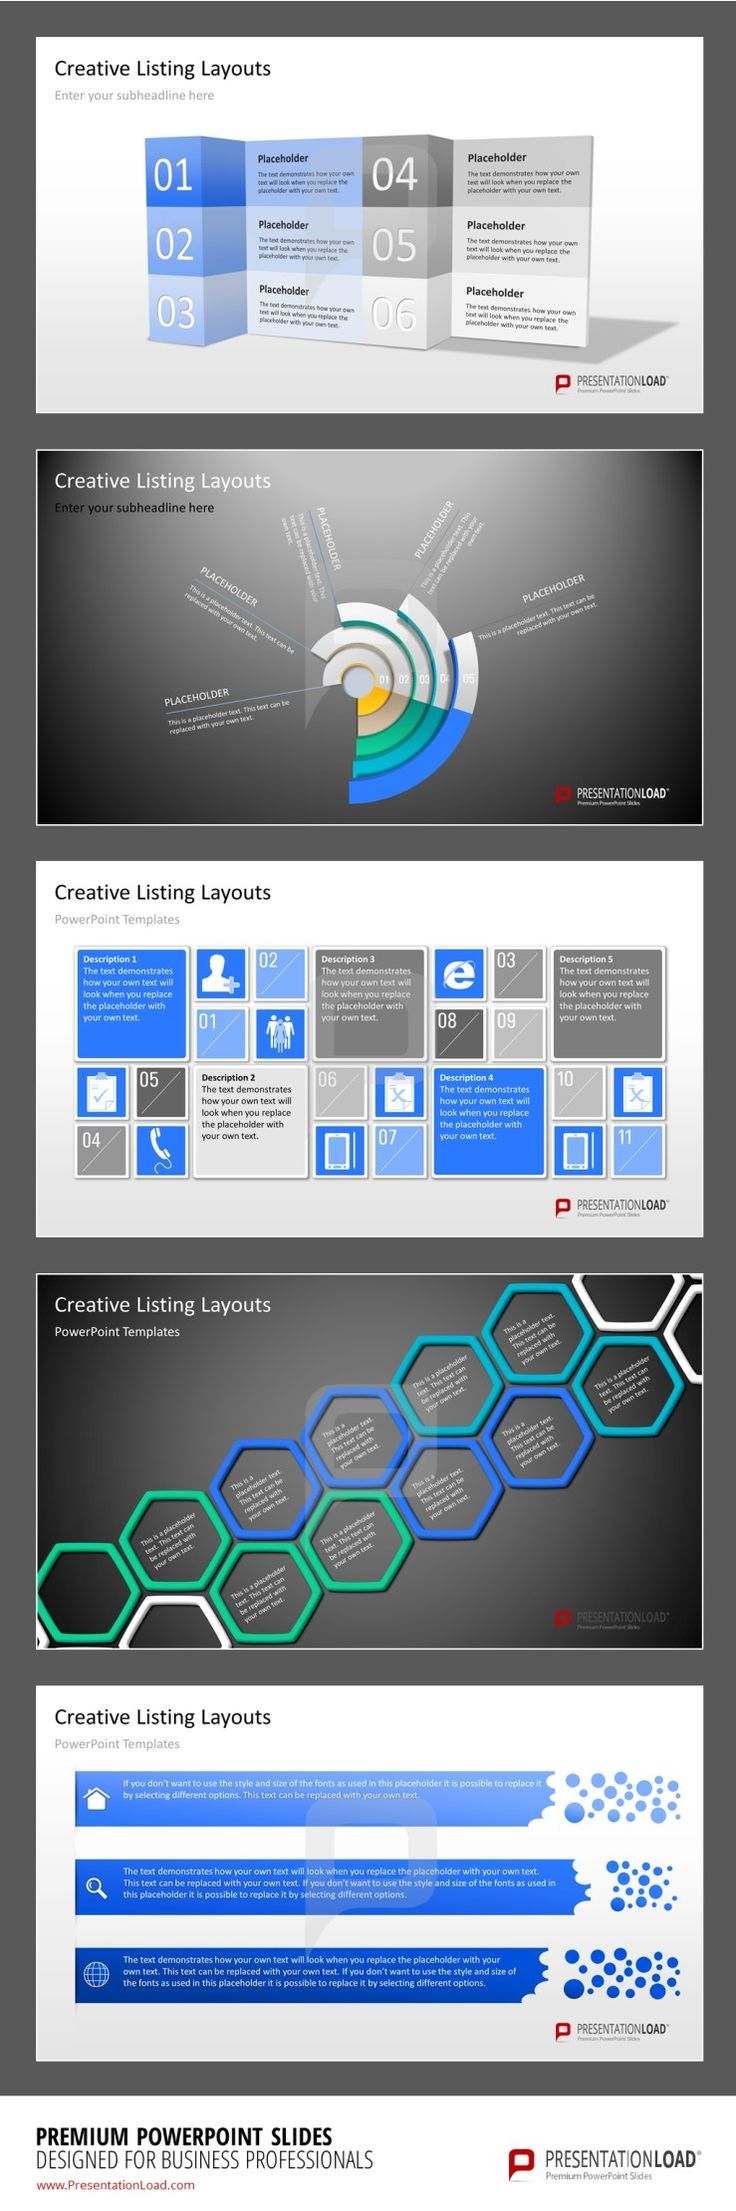 Creative Listings PowerPoint Template The listing layouts have all been created within PowerPoint as vector graphics, which can all be individually adapted to your company specific Corpoarte Design.  #presentationload www.presentationl...